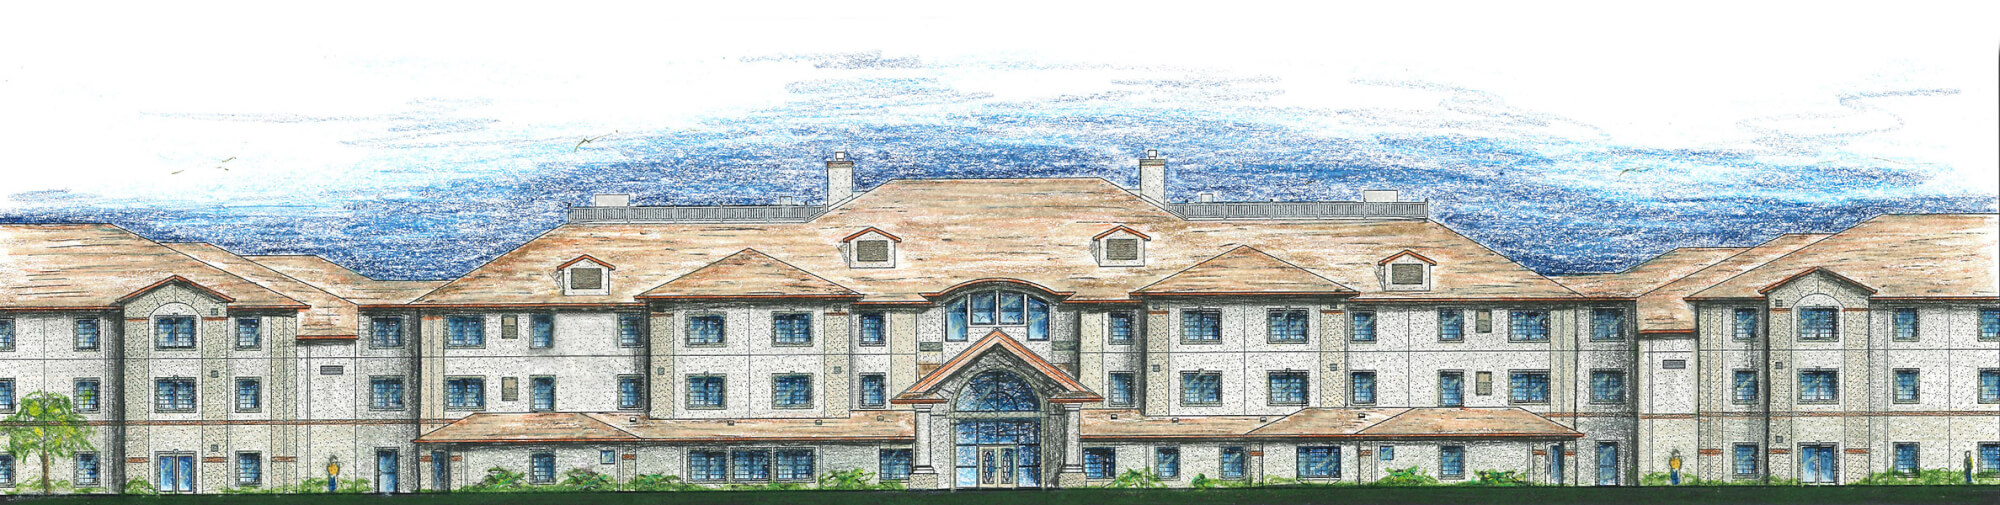 Artist sketch of Lakeview Retirement Community in Columbia, South Carolina.